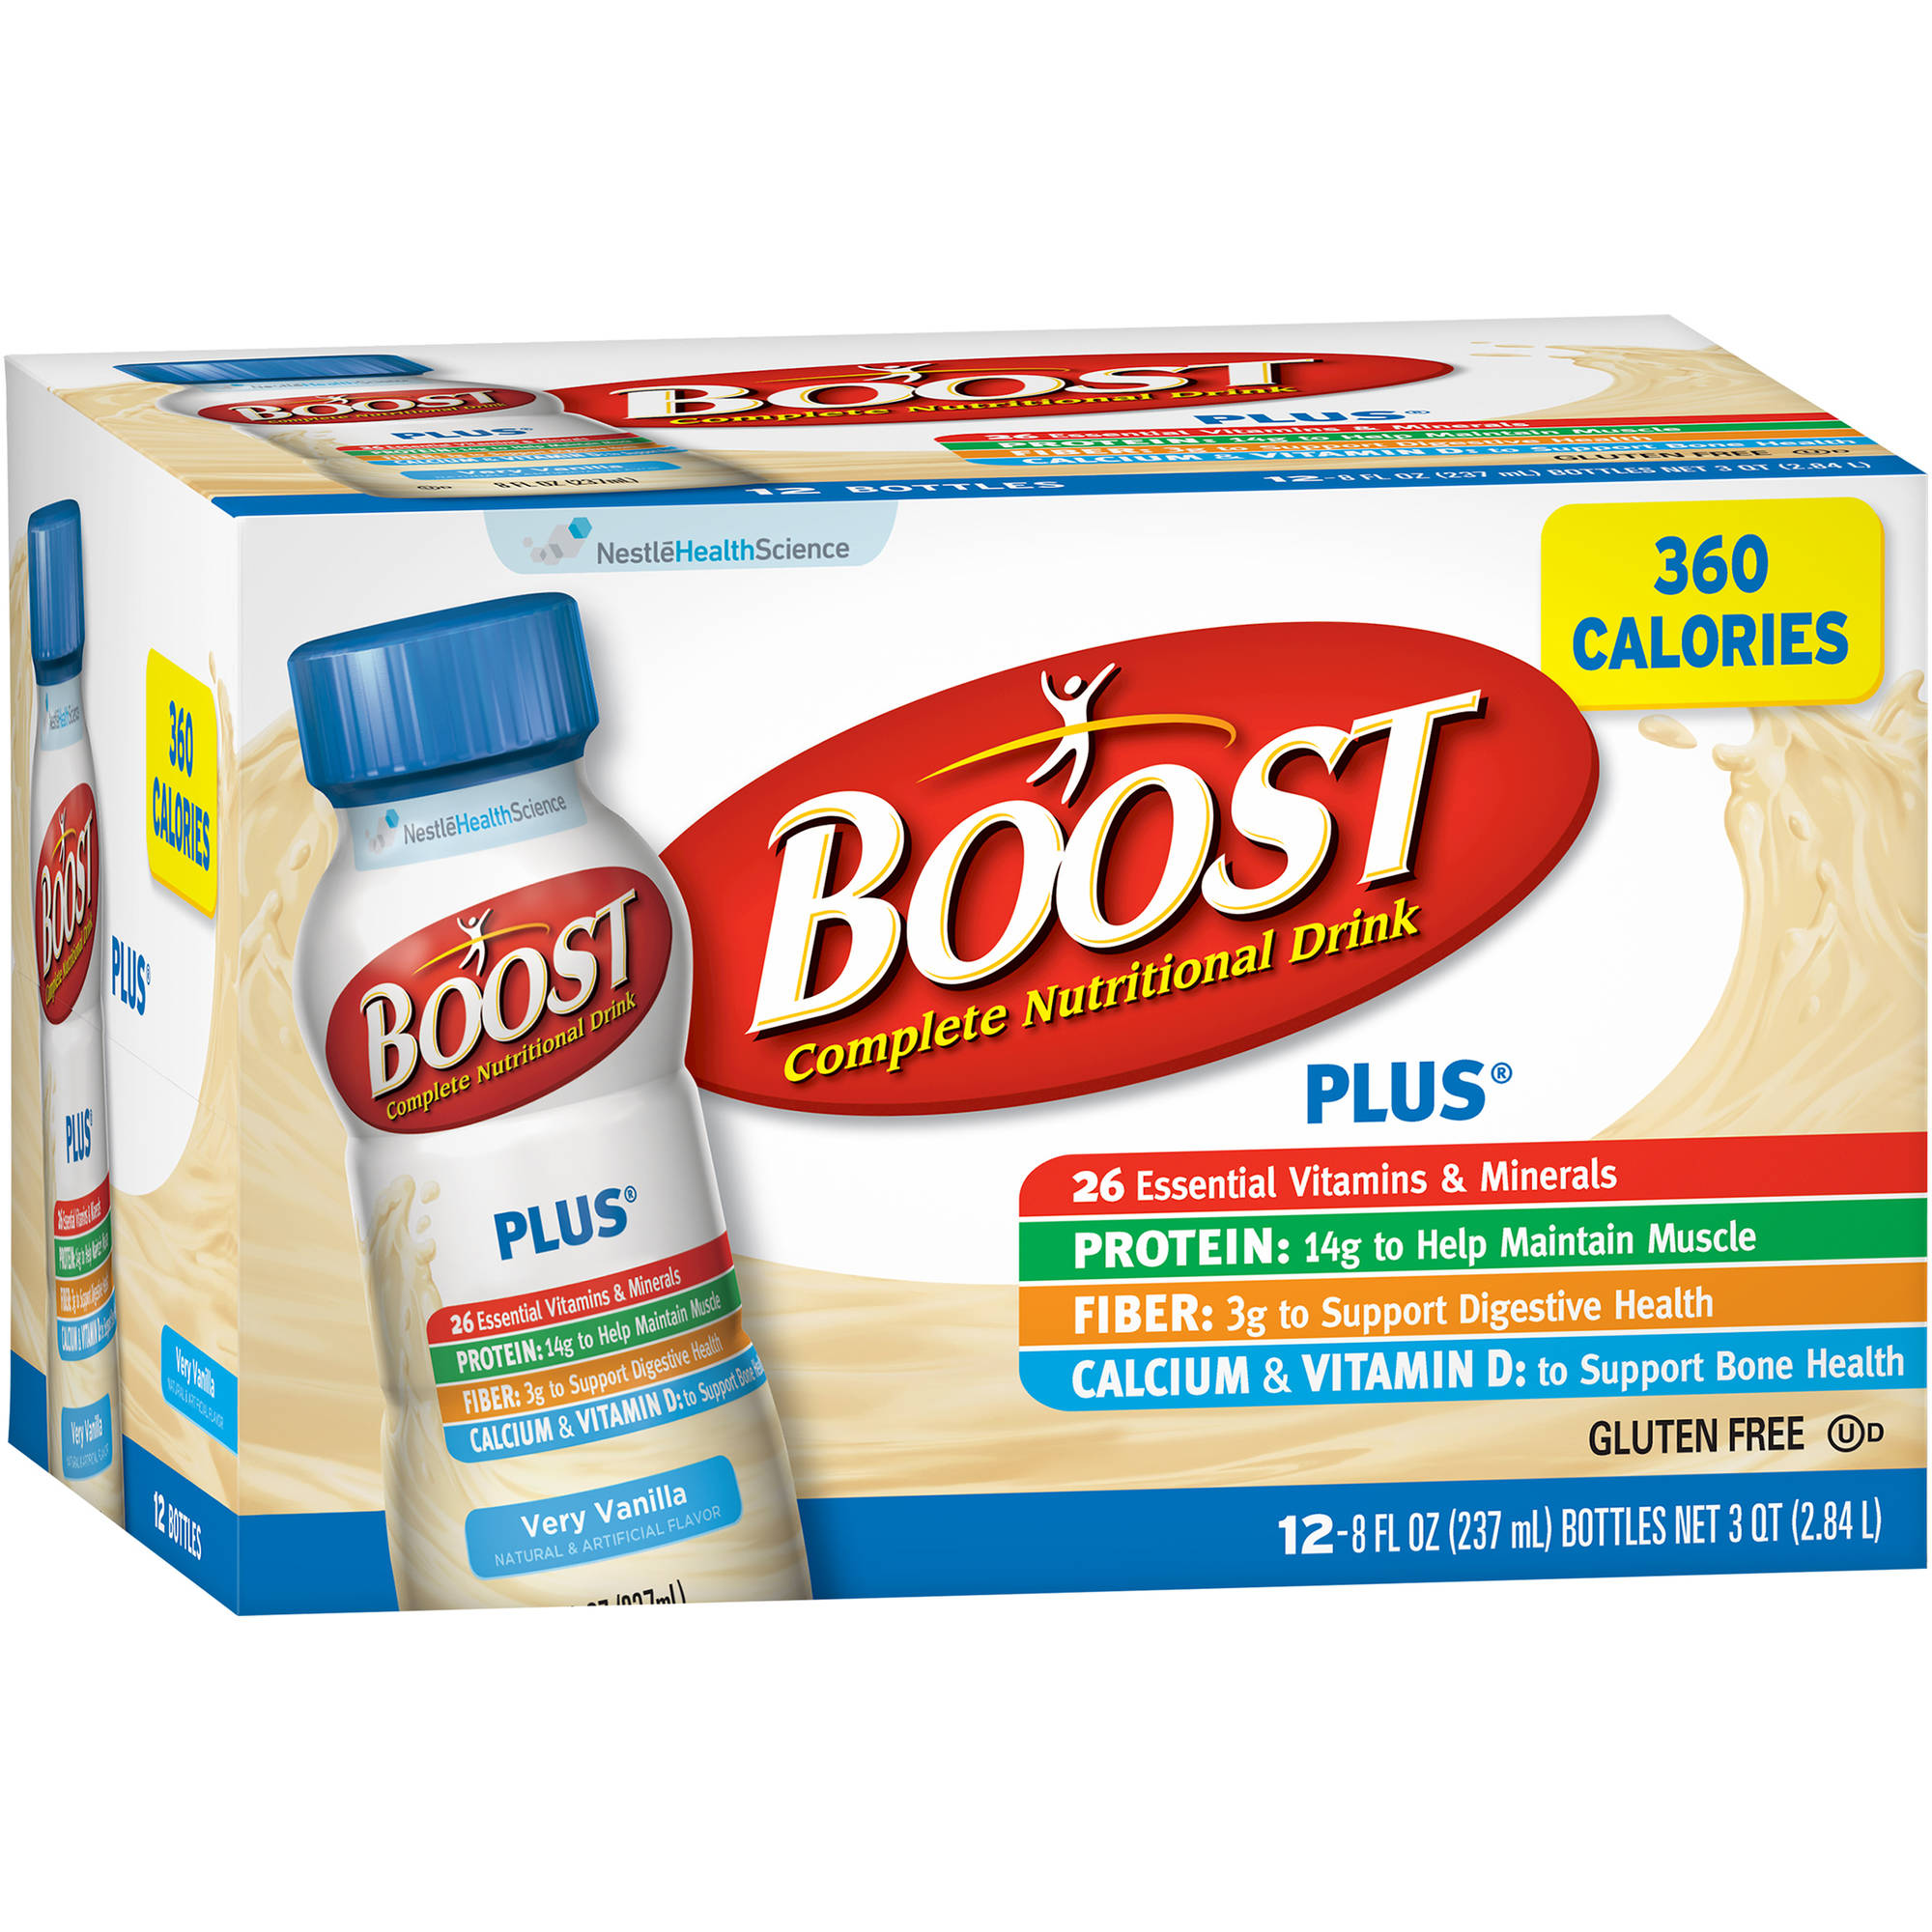 Boost Plus Very Vanilla Complete Nutritional Drink, 8 fl oz, 12 count